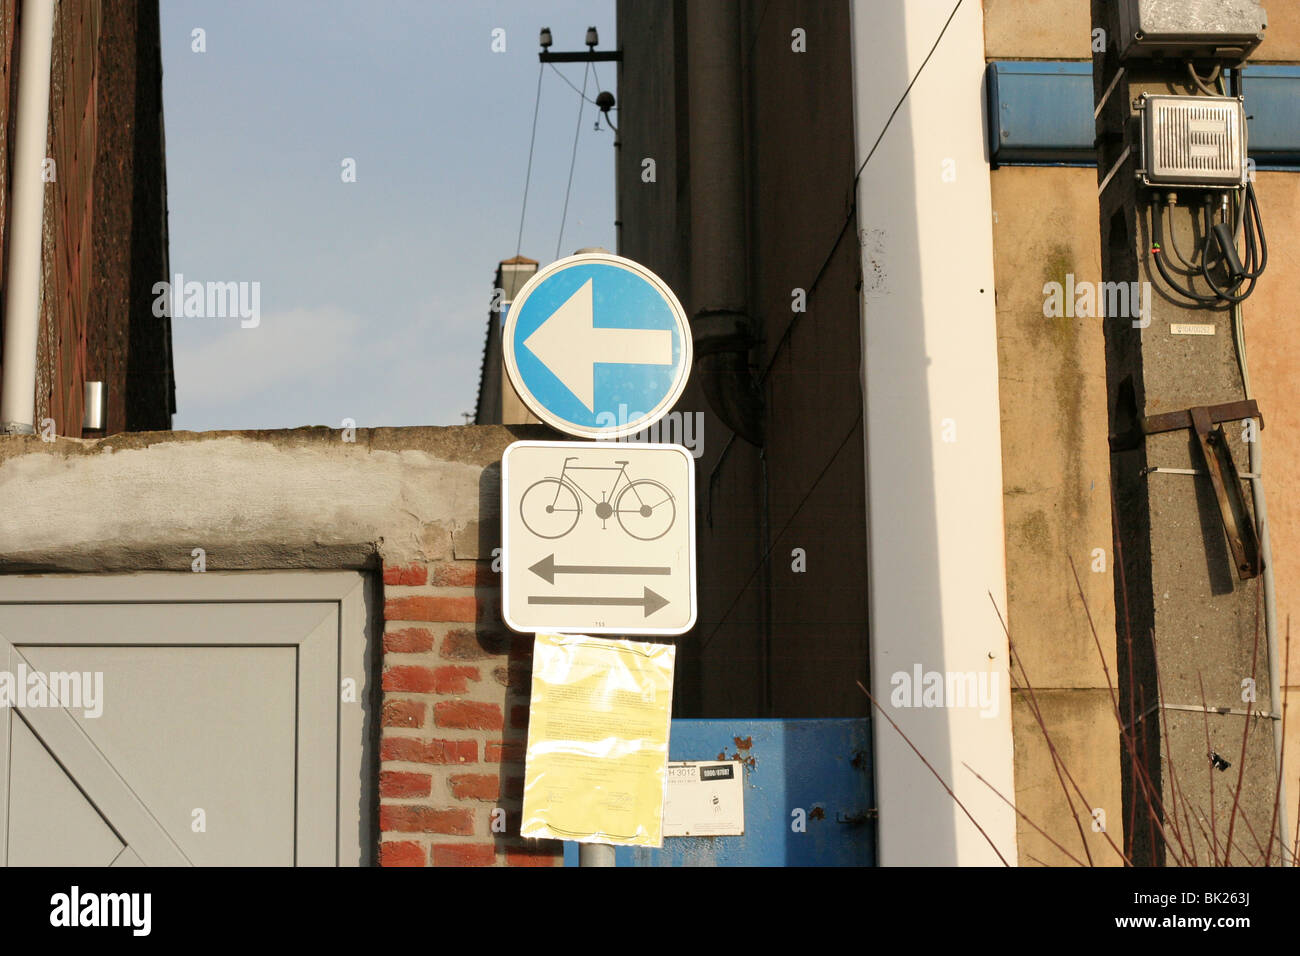 Street indication for bikes. Belgium - Stock Image